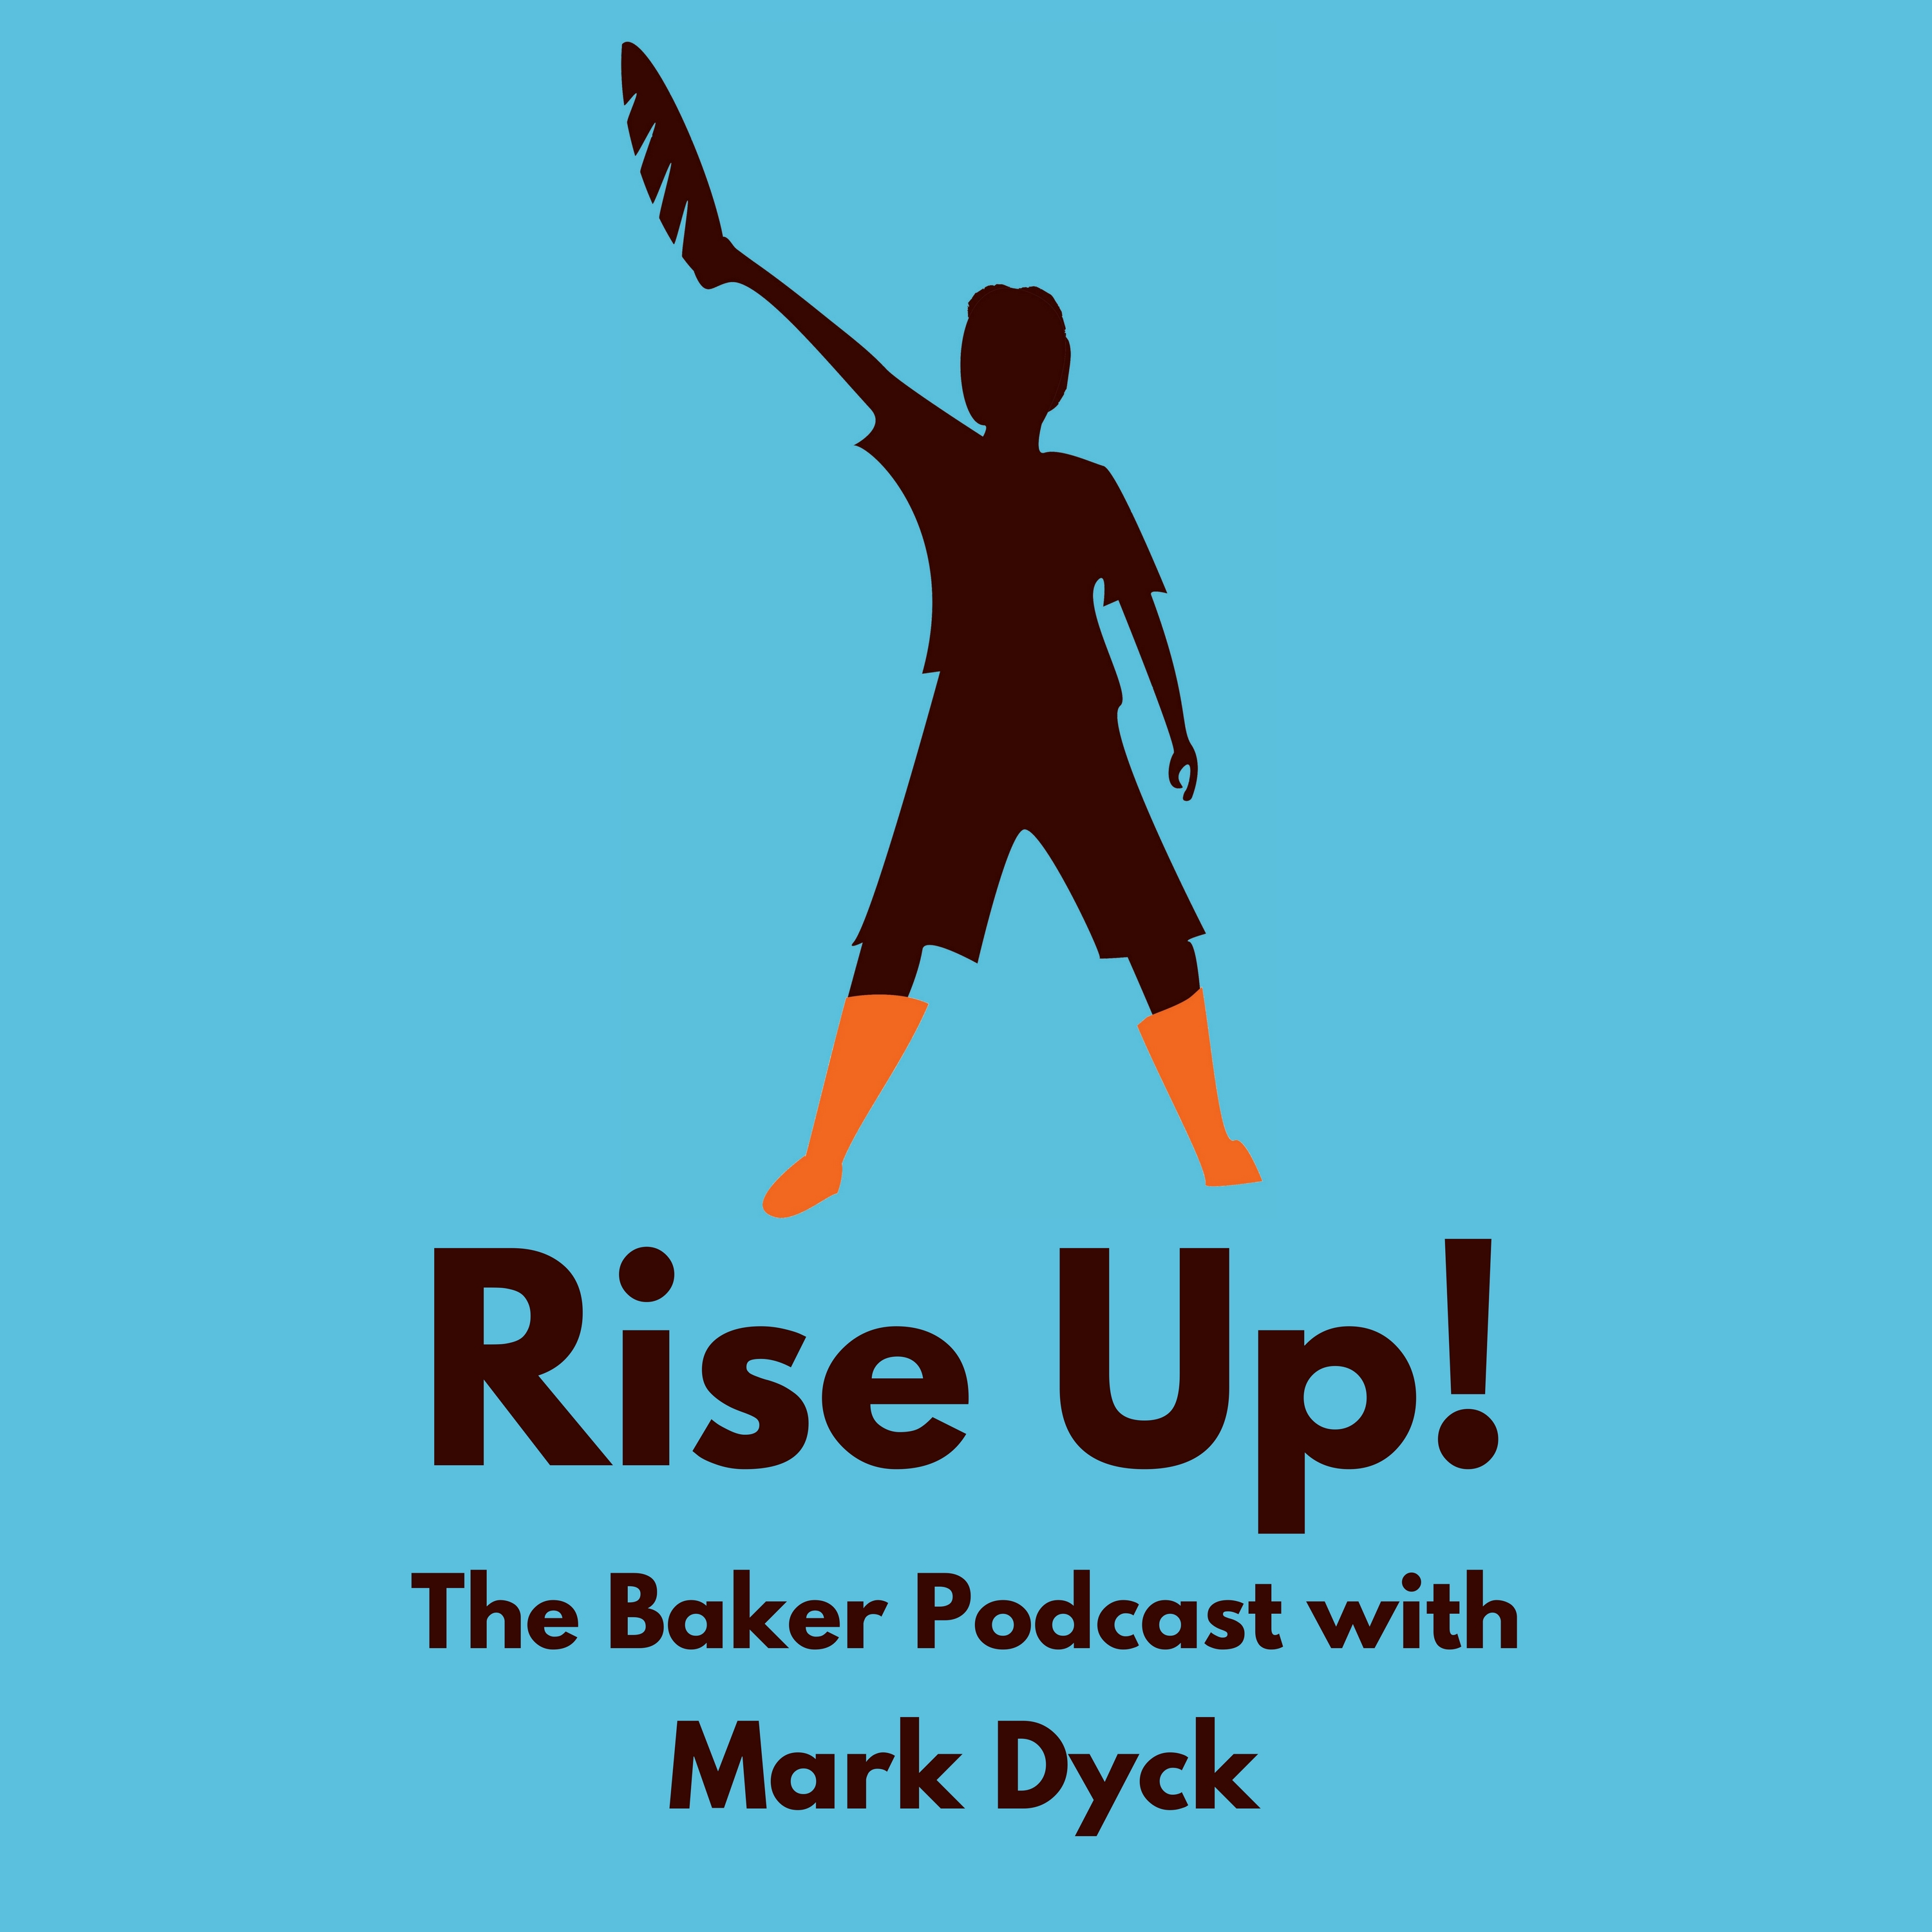 Rise Up! The Baker Podcast with Mark Dyck show art